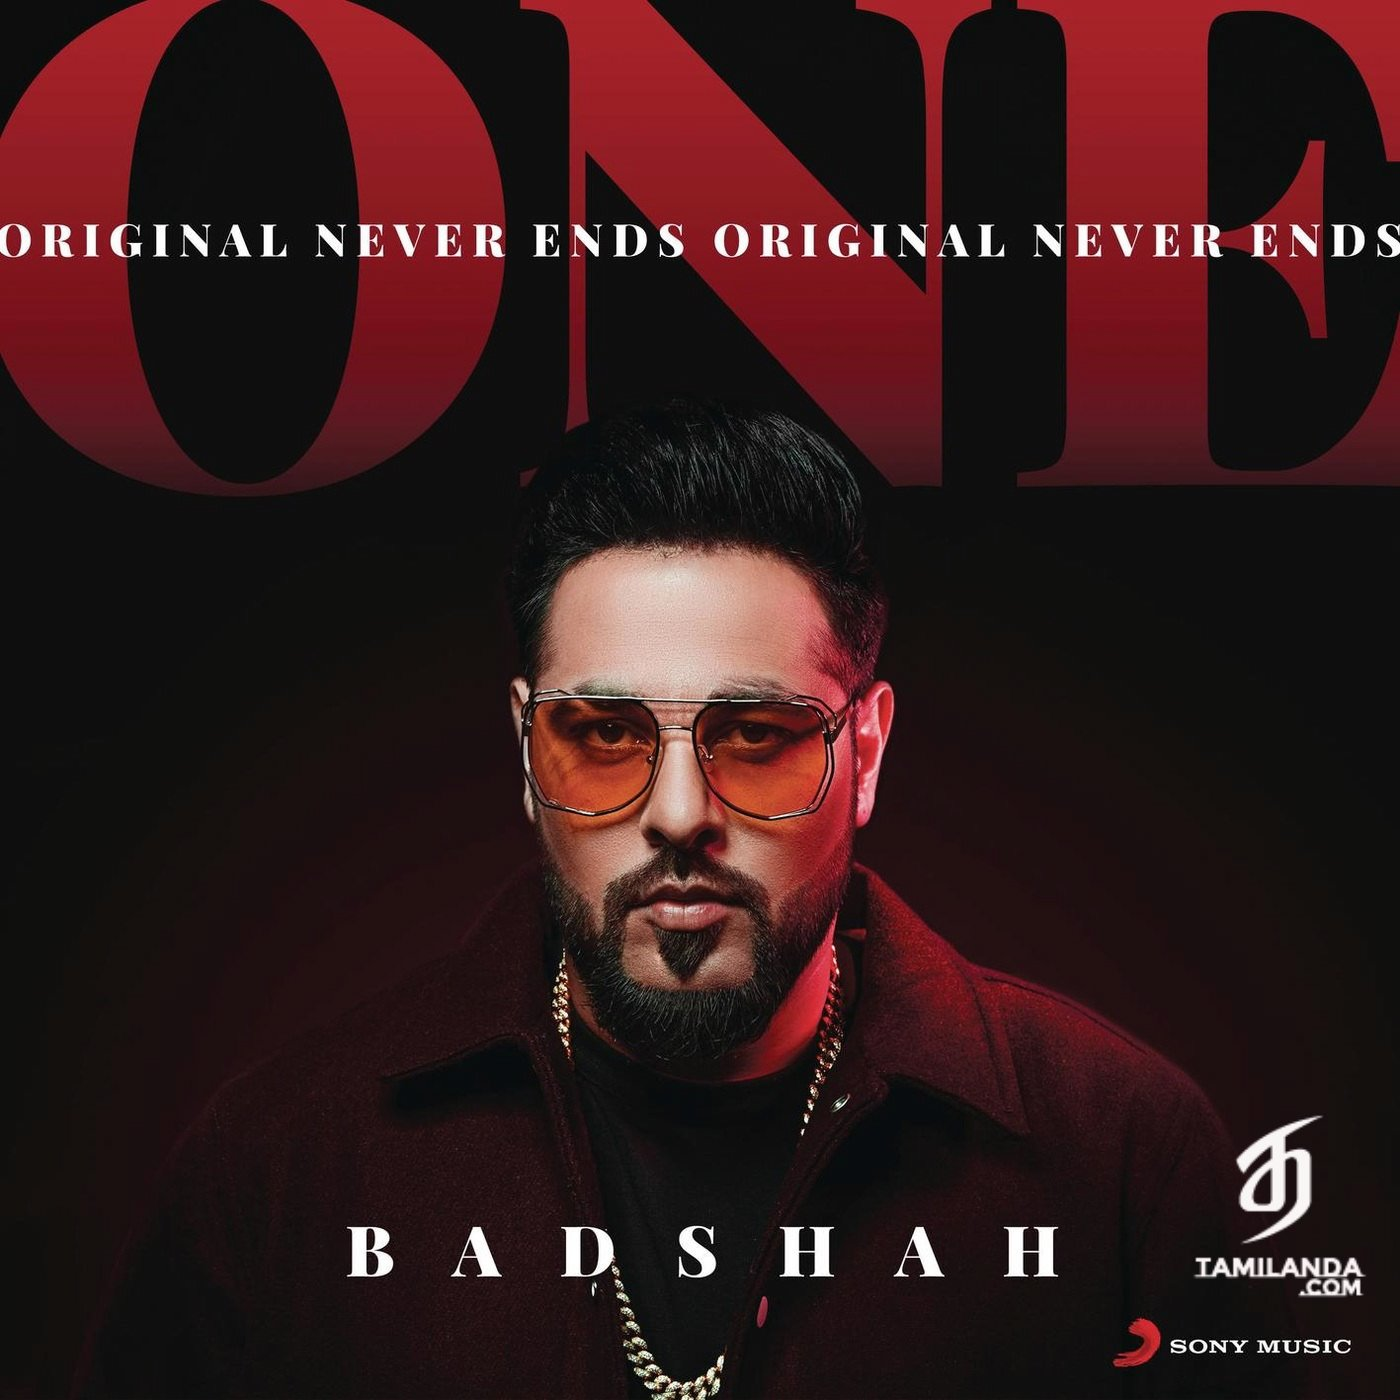 ONE (Original Never Ends) FLAC Songs